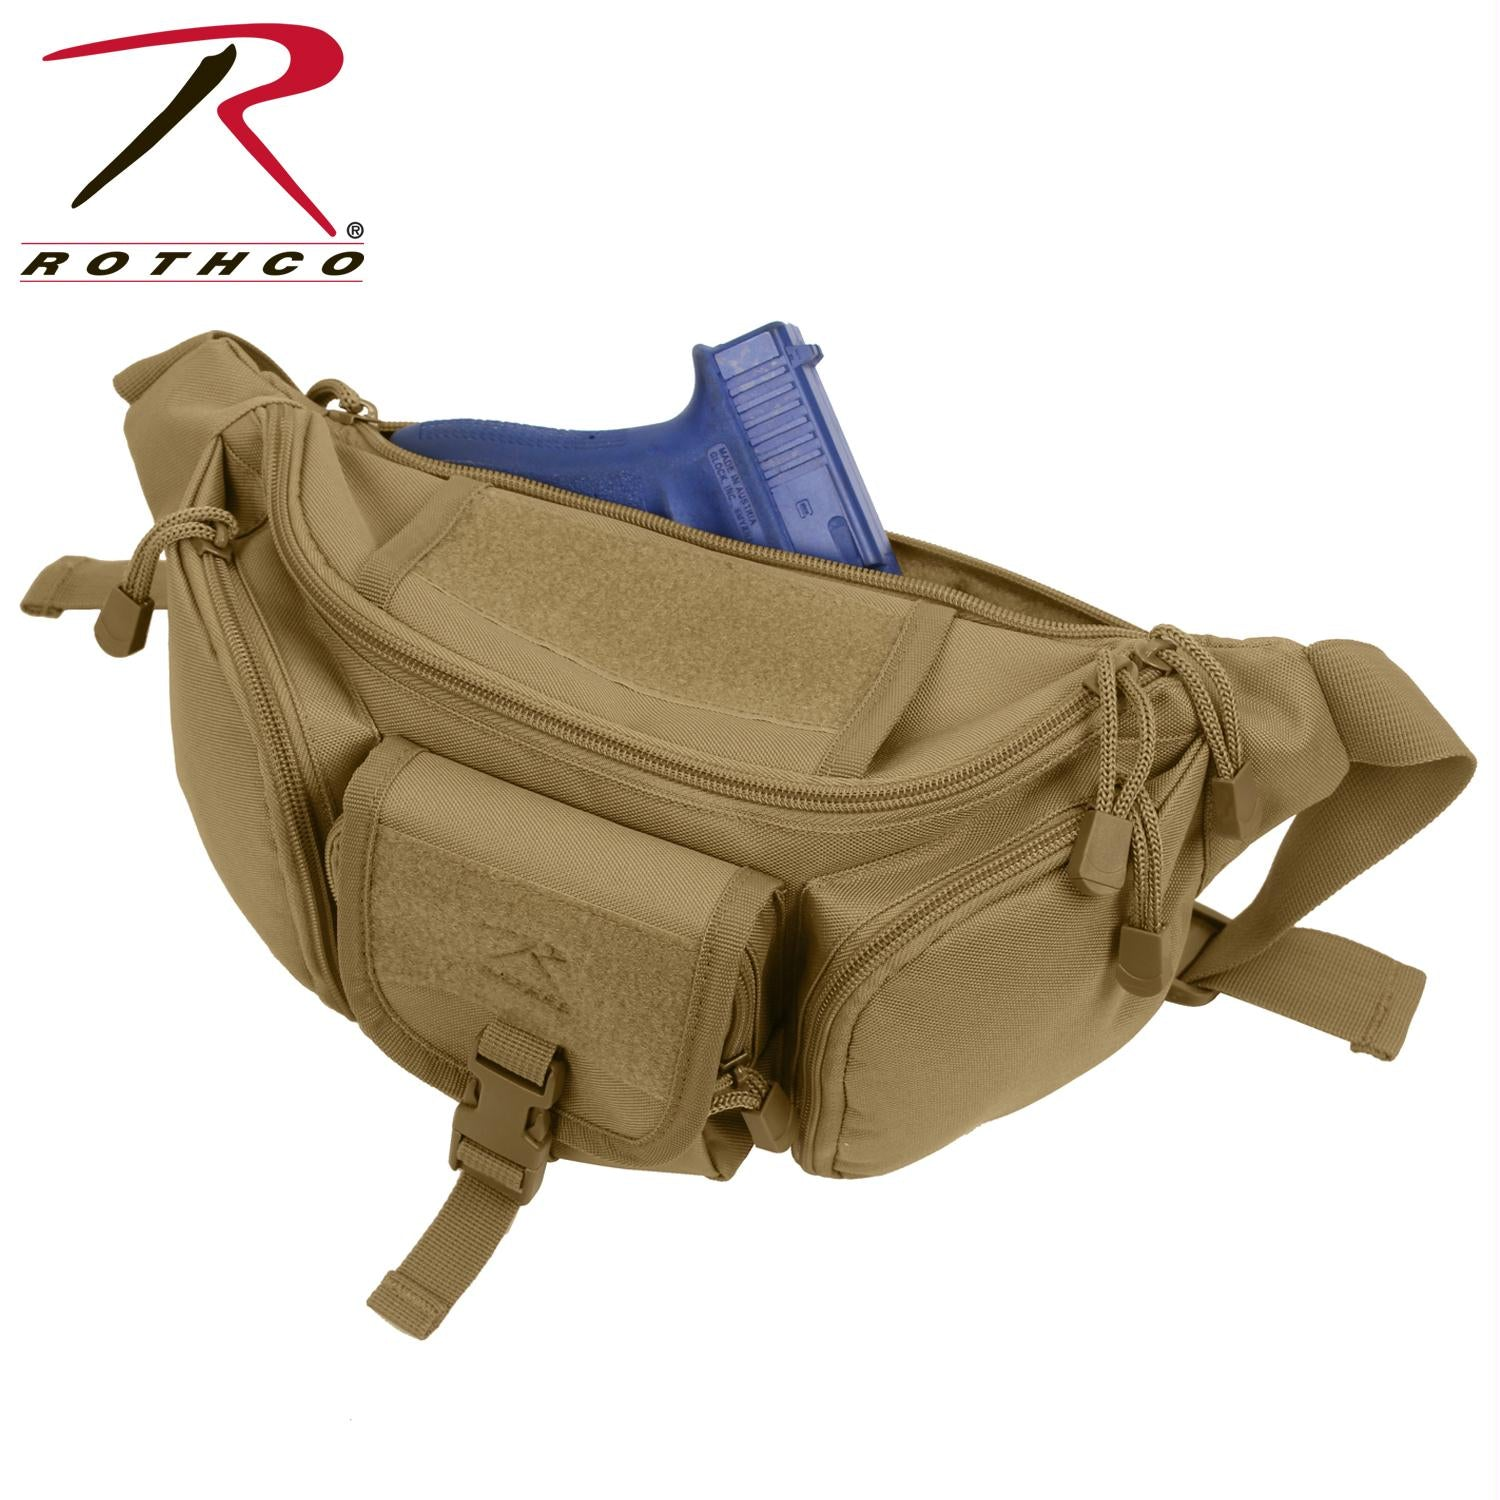 Rothco Tactical Waist Pack - Coyote Brown